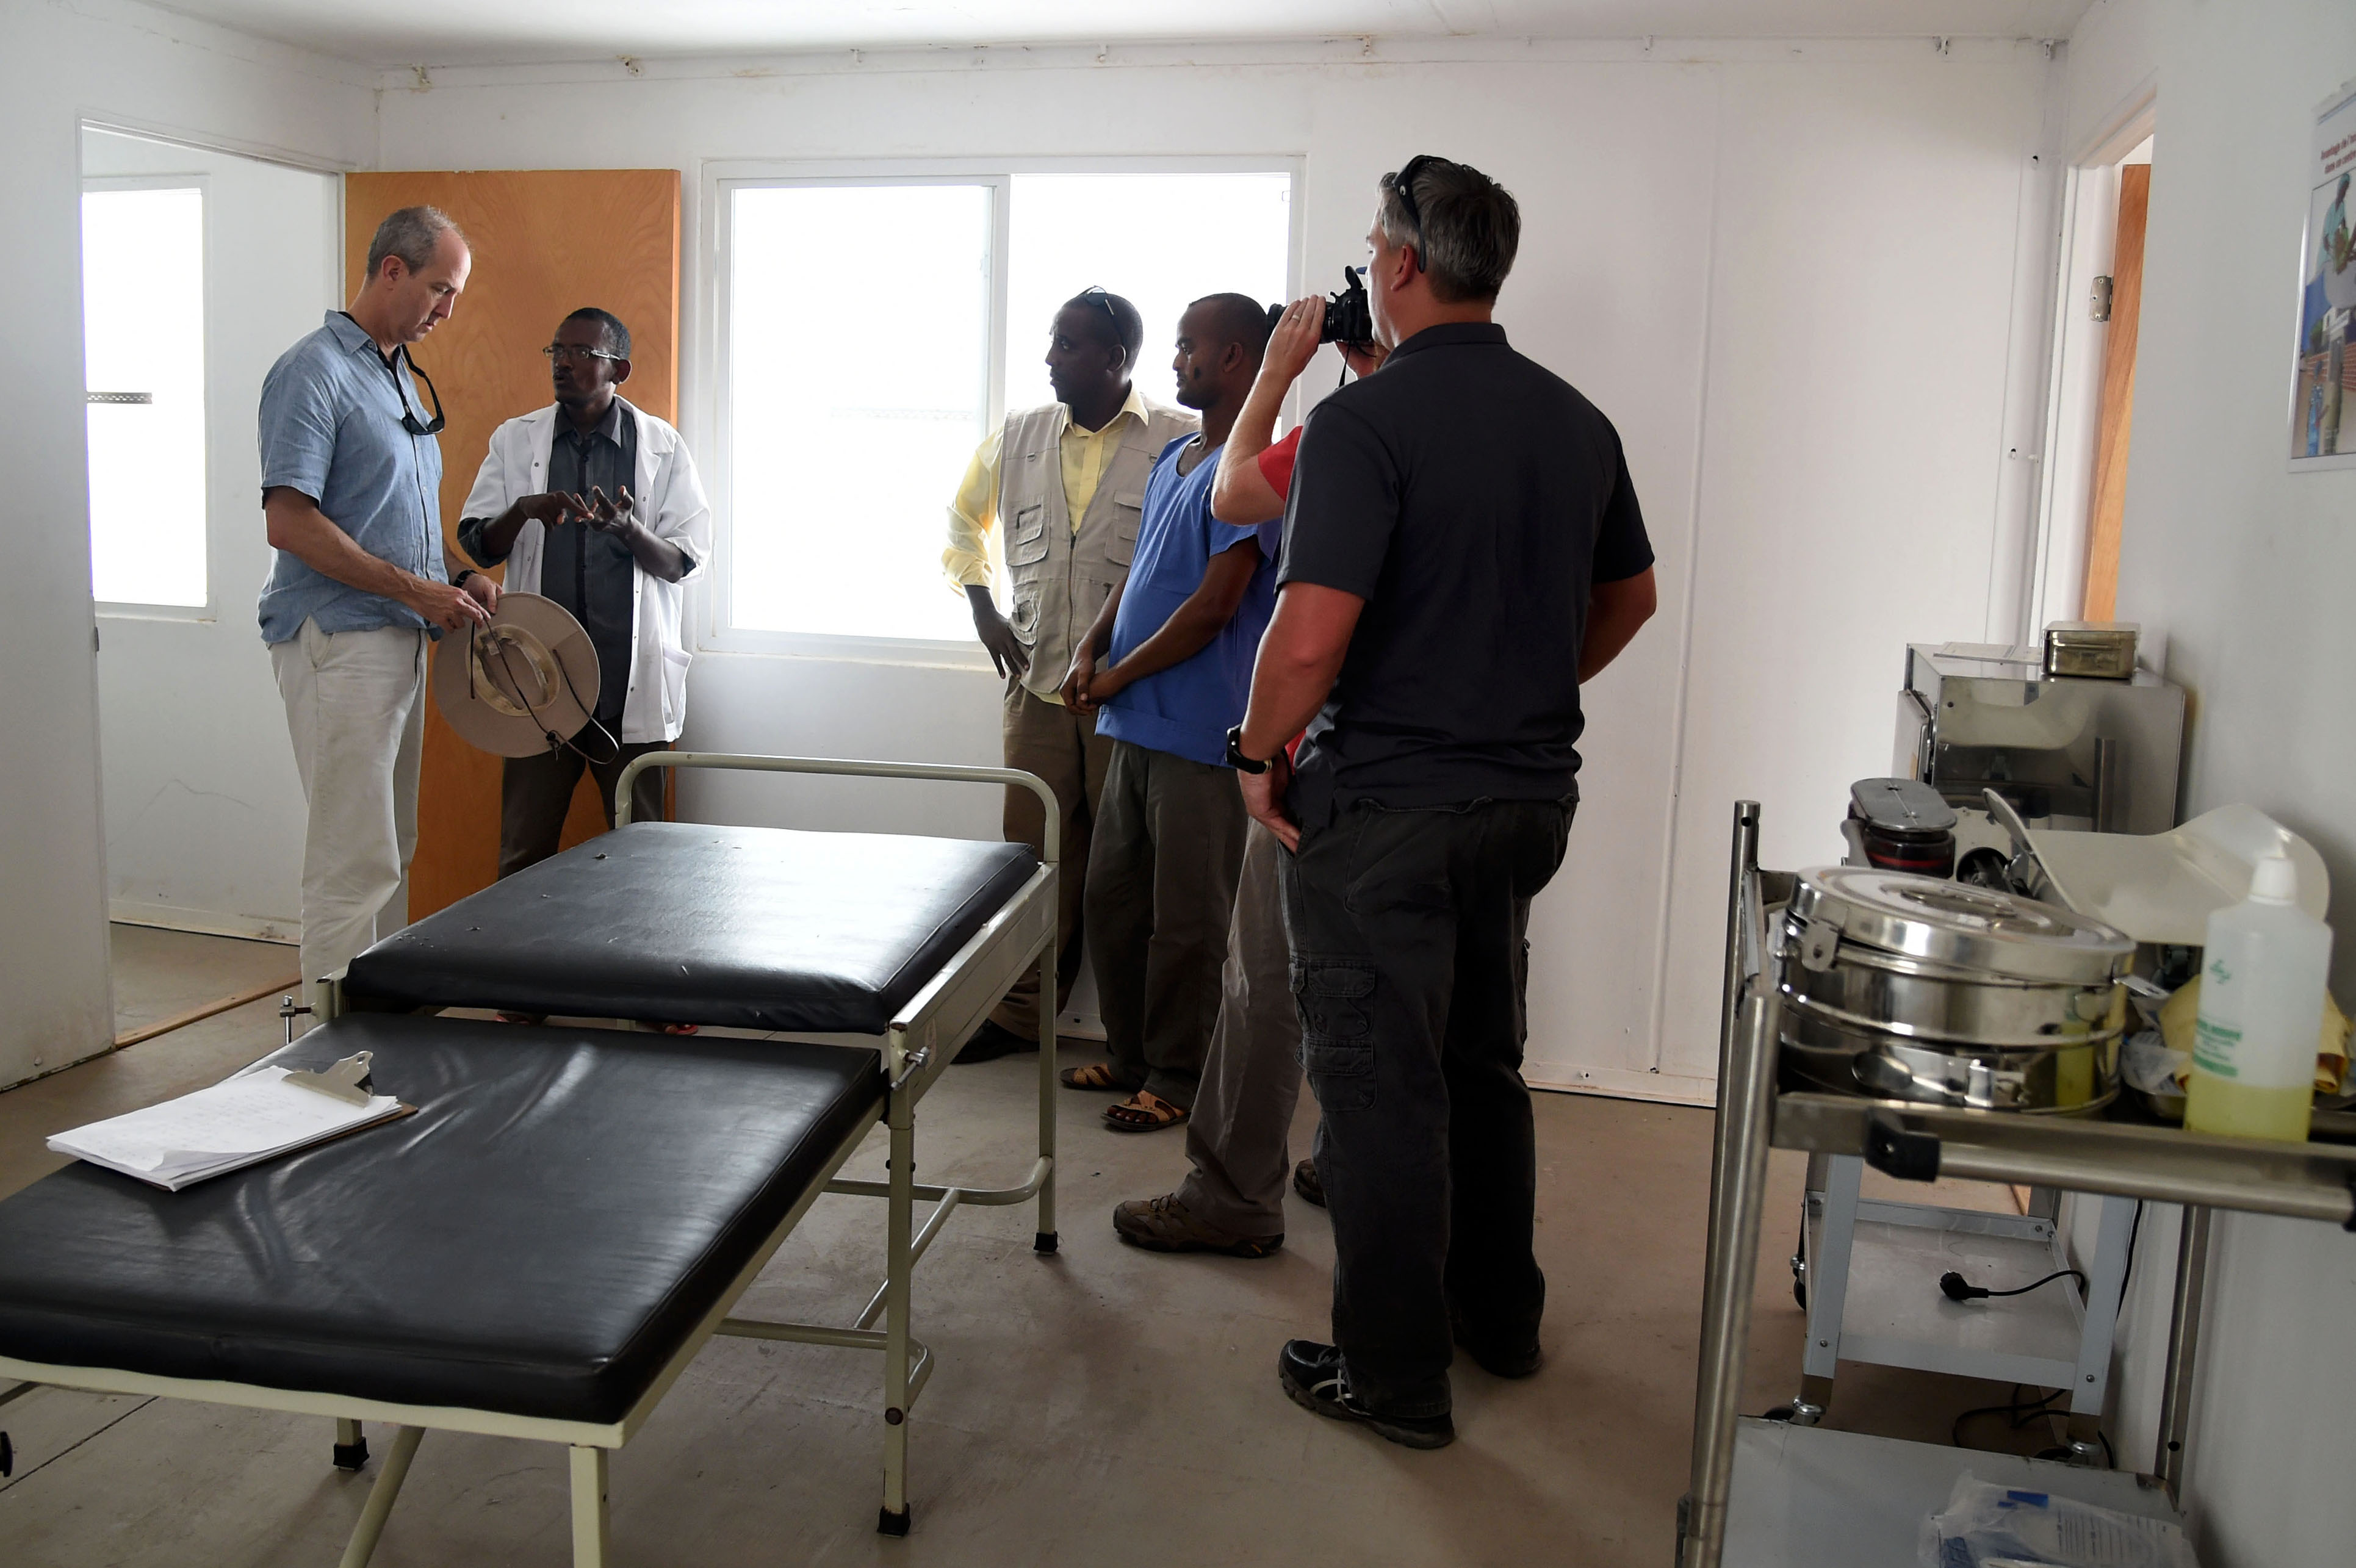 KALAF, Djibouti –  Ambassador Tom Kelly, U.S. Ambassador to the Republic of Djibouti visits with Djiboutian medical personnel at Kalaf Medical Clinic in Kalaf, Djibouti, May 17, 2016. Completed by Naval Mobile Construction Battalions 133 and 74, the clinic is the first in its area providing primary medical care to Kalaf, Tadjoura and surrounding villages. (U.S. Air Force photo by Staff Sgt. Tiffany DeNault)